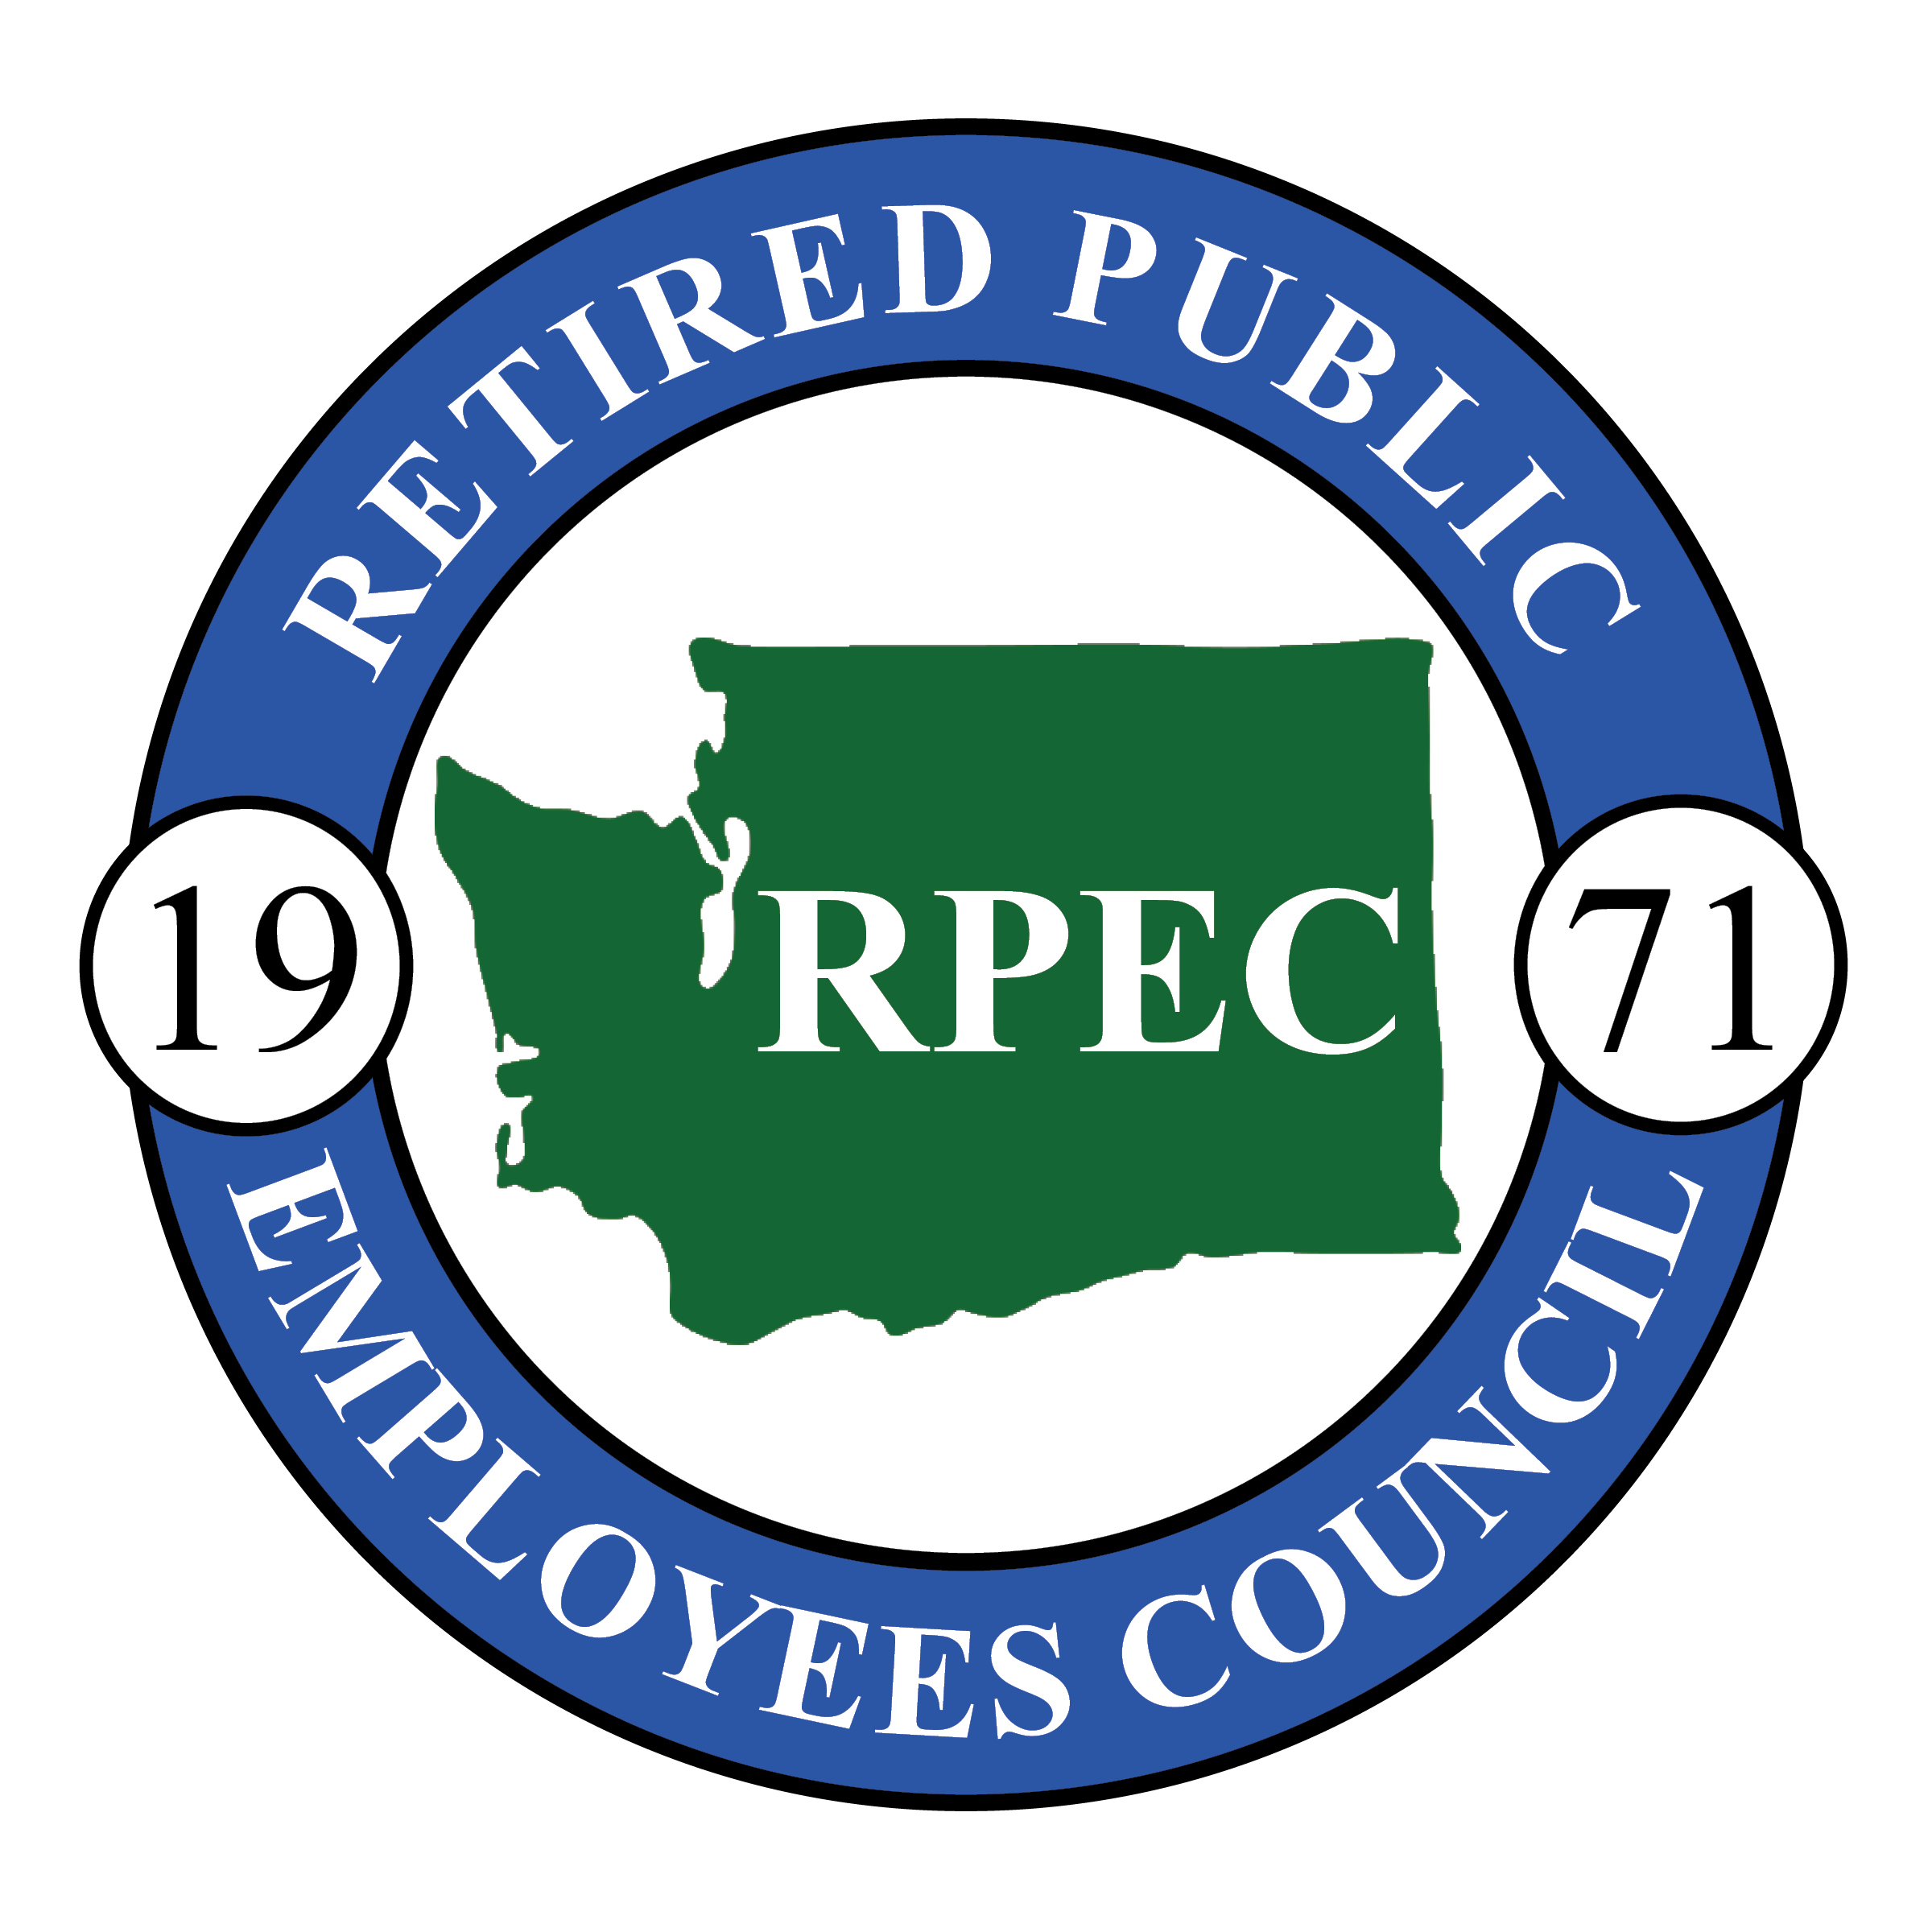 Luncheon clipart department meeting. Join rpec retired public